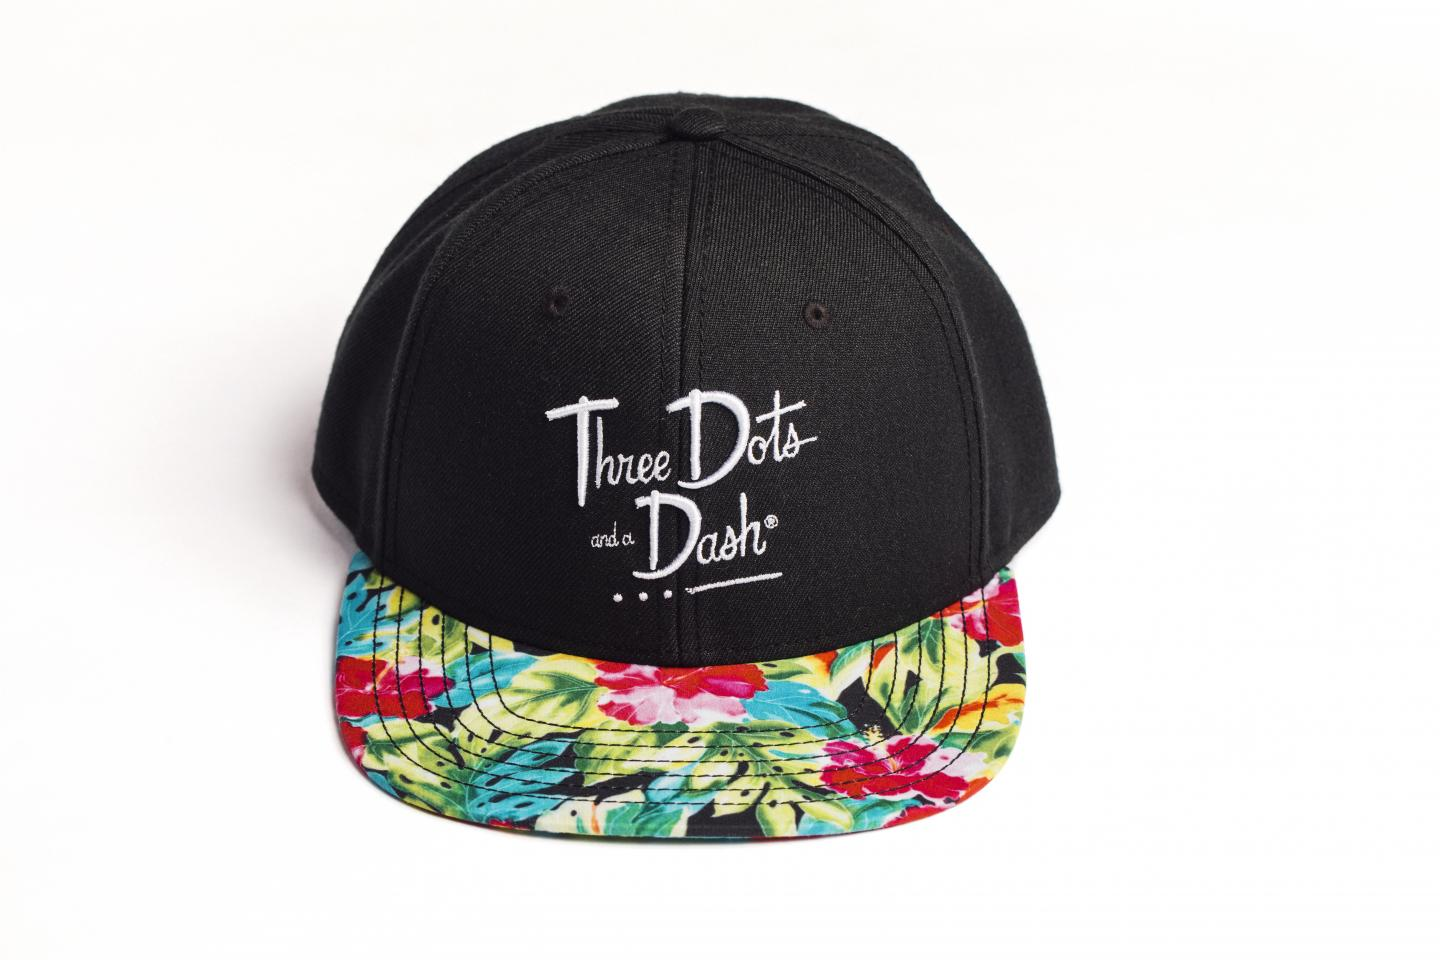 three dots and a dash hat